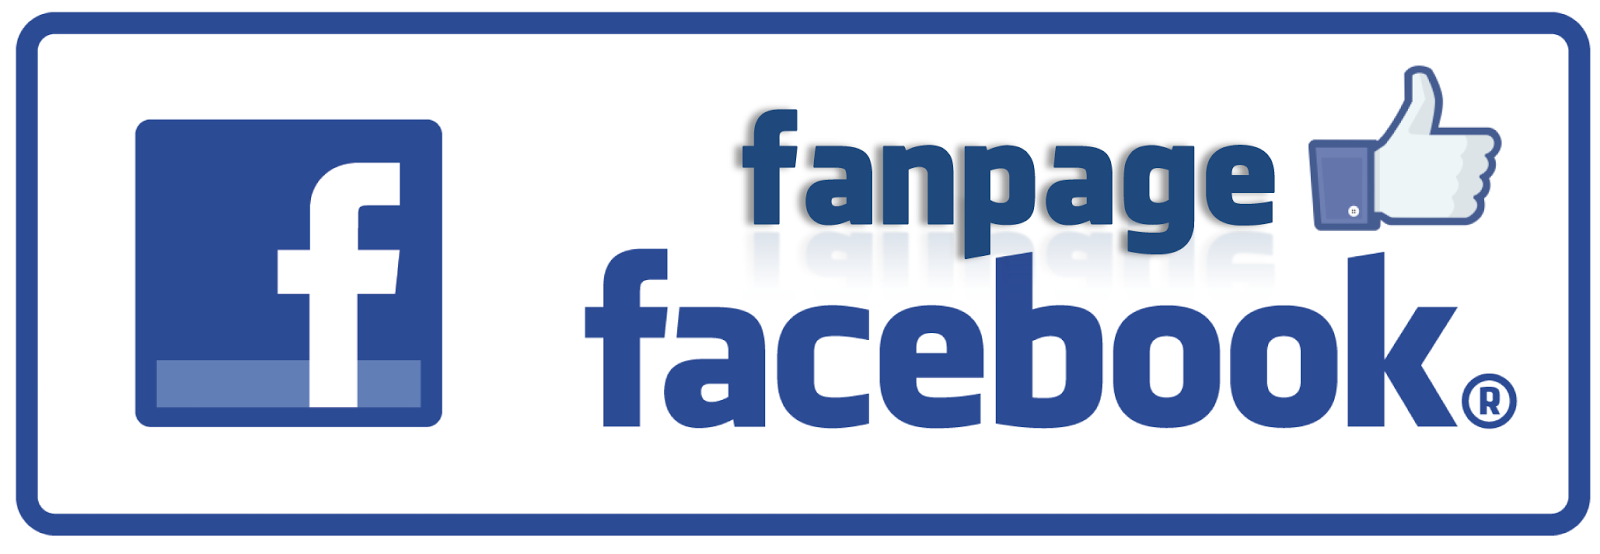 Tips Fanpage Facebook